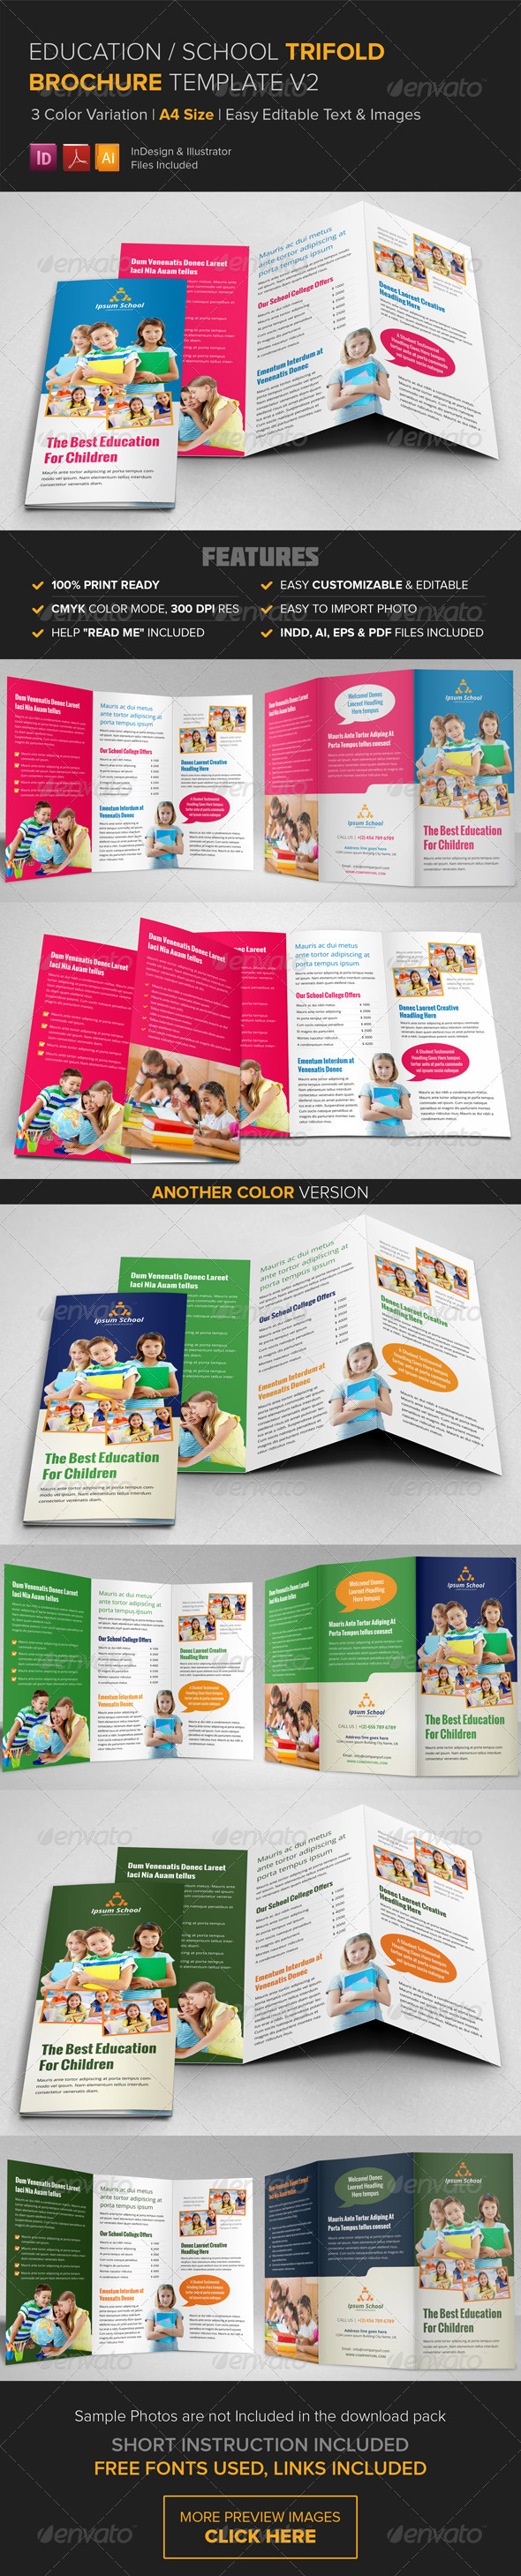 GraphicRiver Education School Trifold Brochure Template v2 8750511